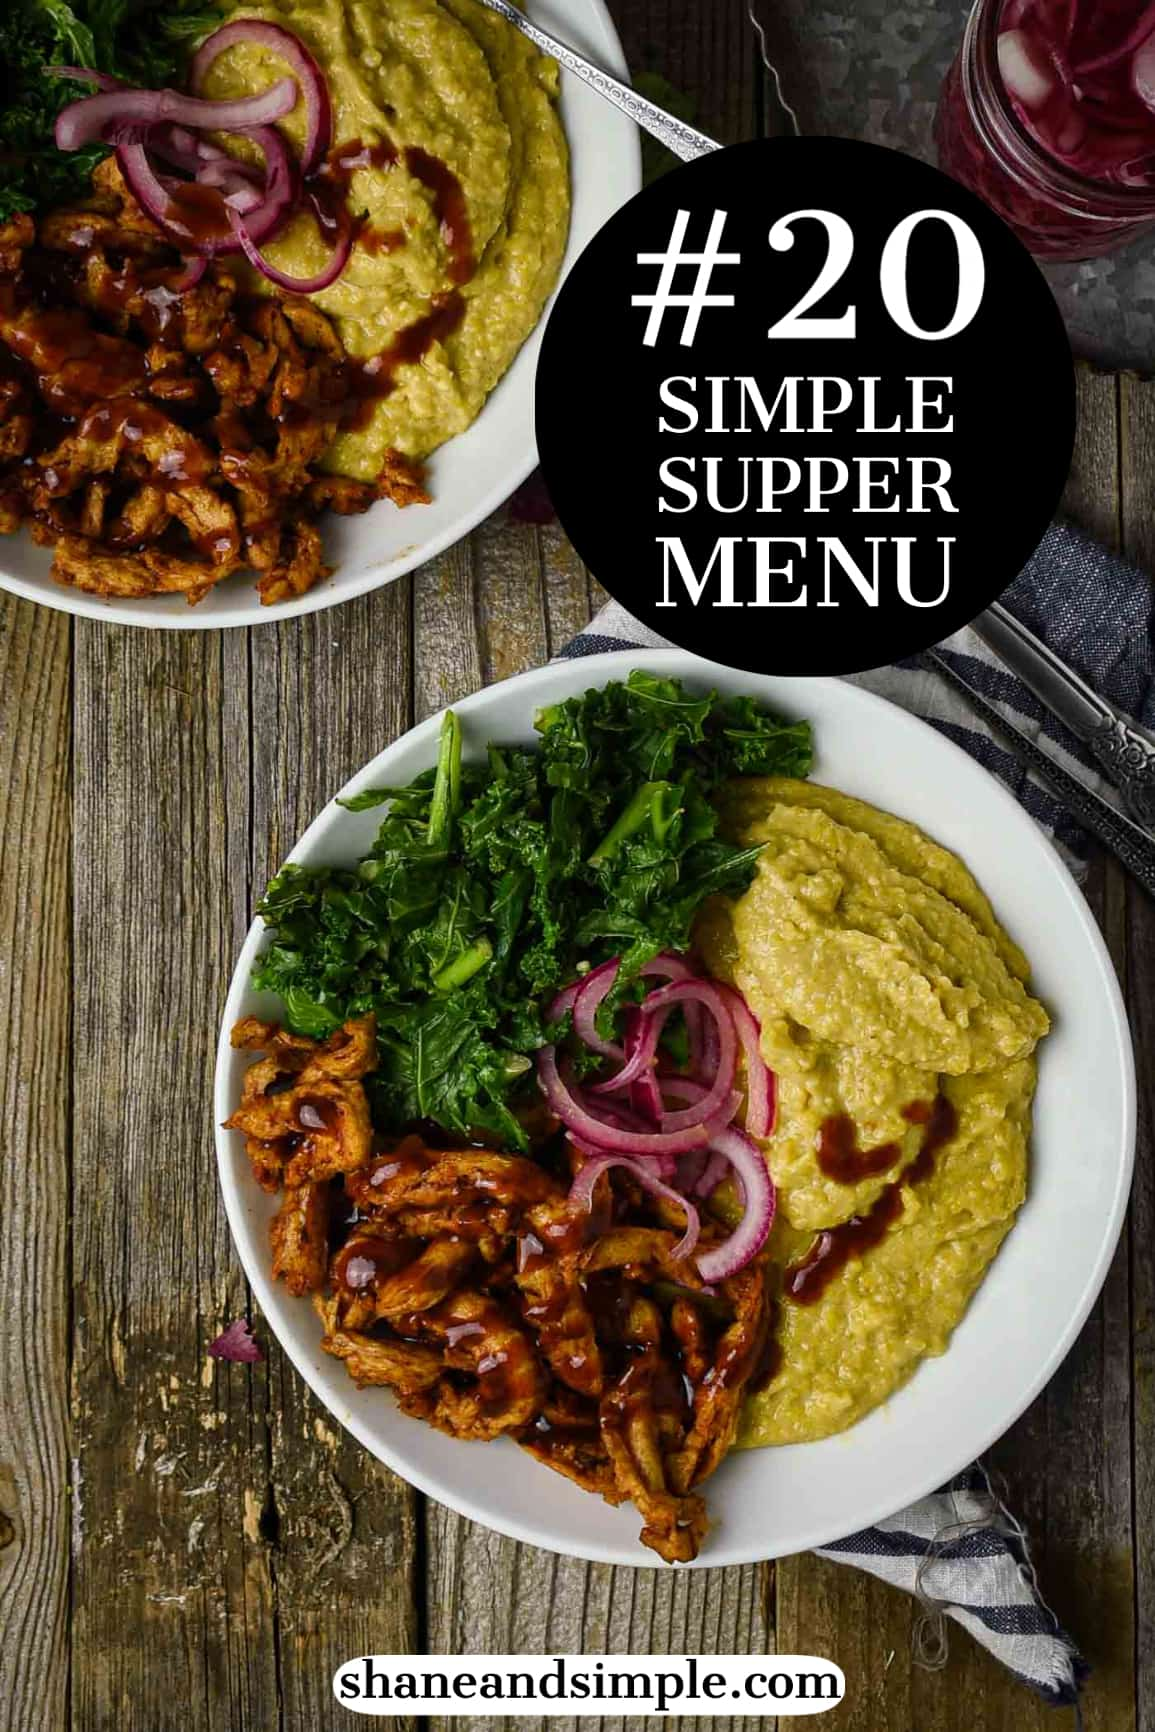 Simple Supper Menu #20 is all about satisfaction, comfort, and flavor. And, it's all in ONE BOWL! This Vegan Grits Bowl with BBQ Soy Curls and Kale is healthy, plant-based, and perfect for an easy midweek meal.